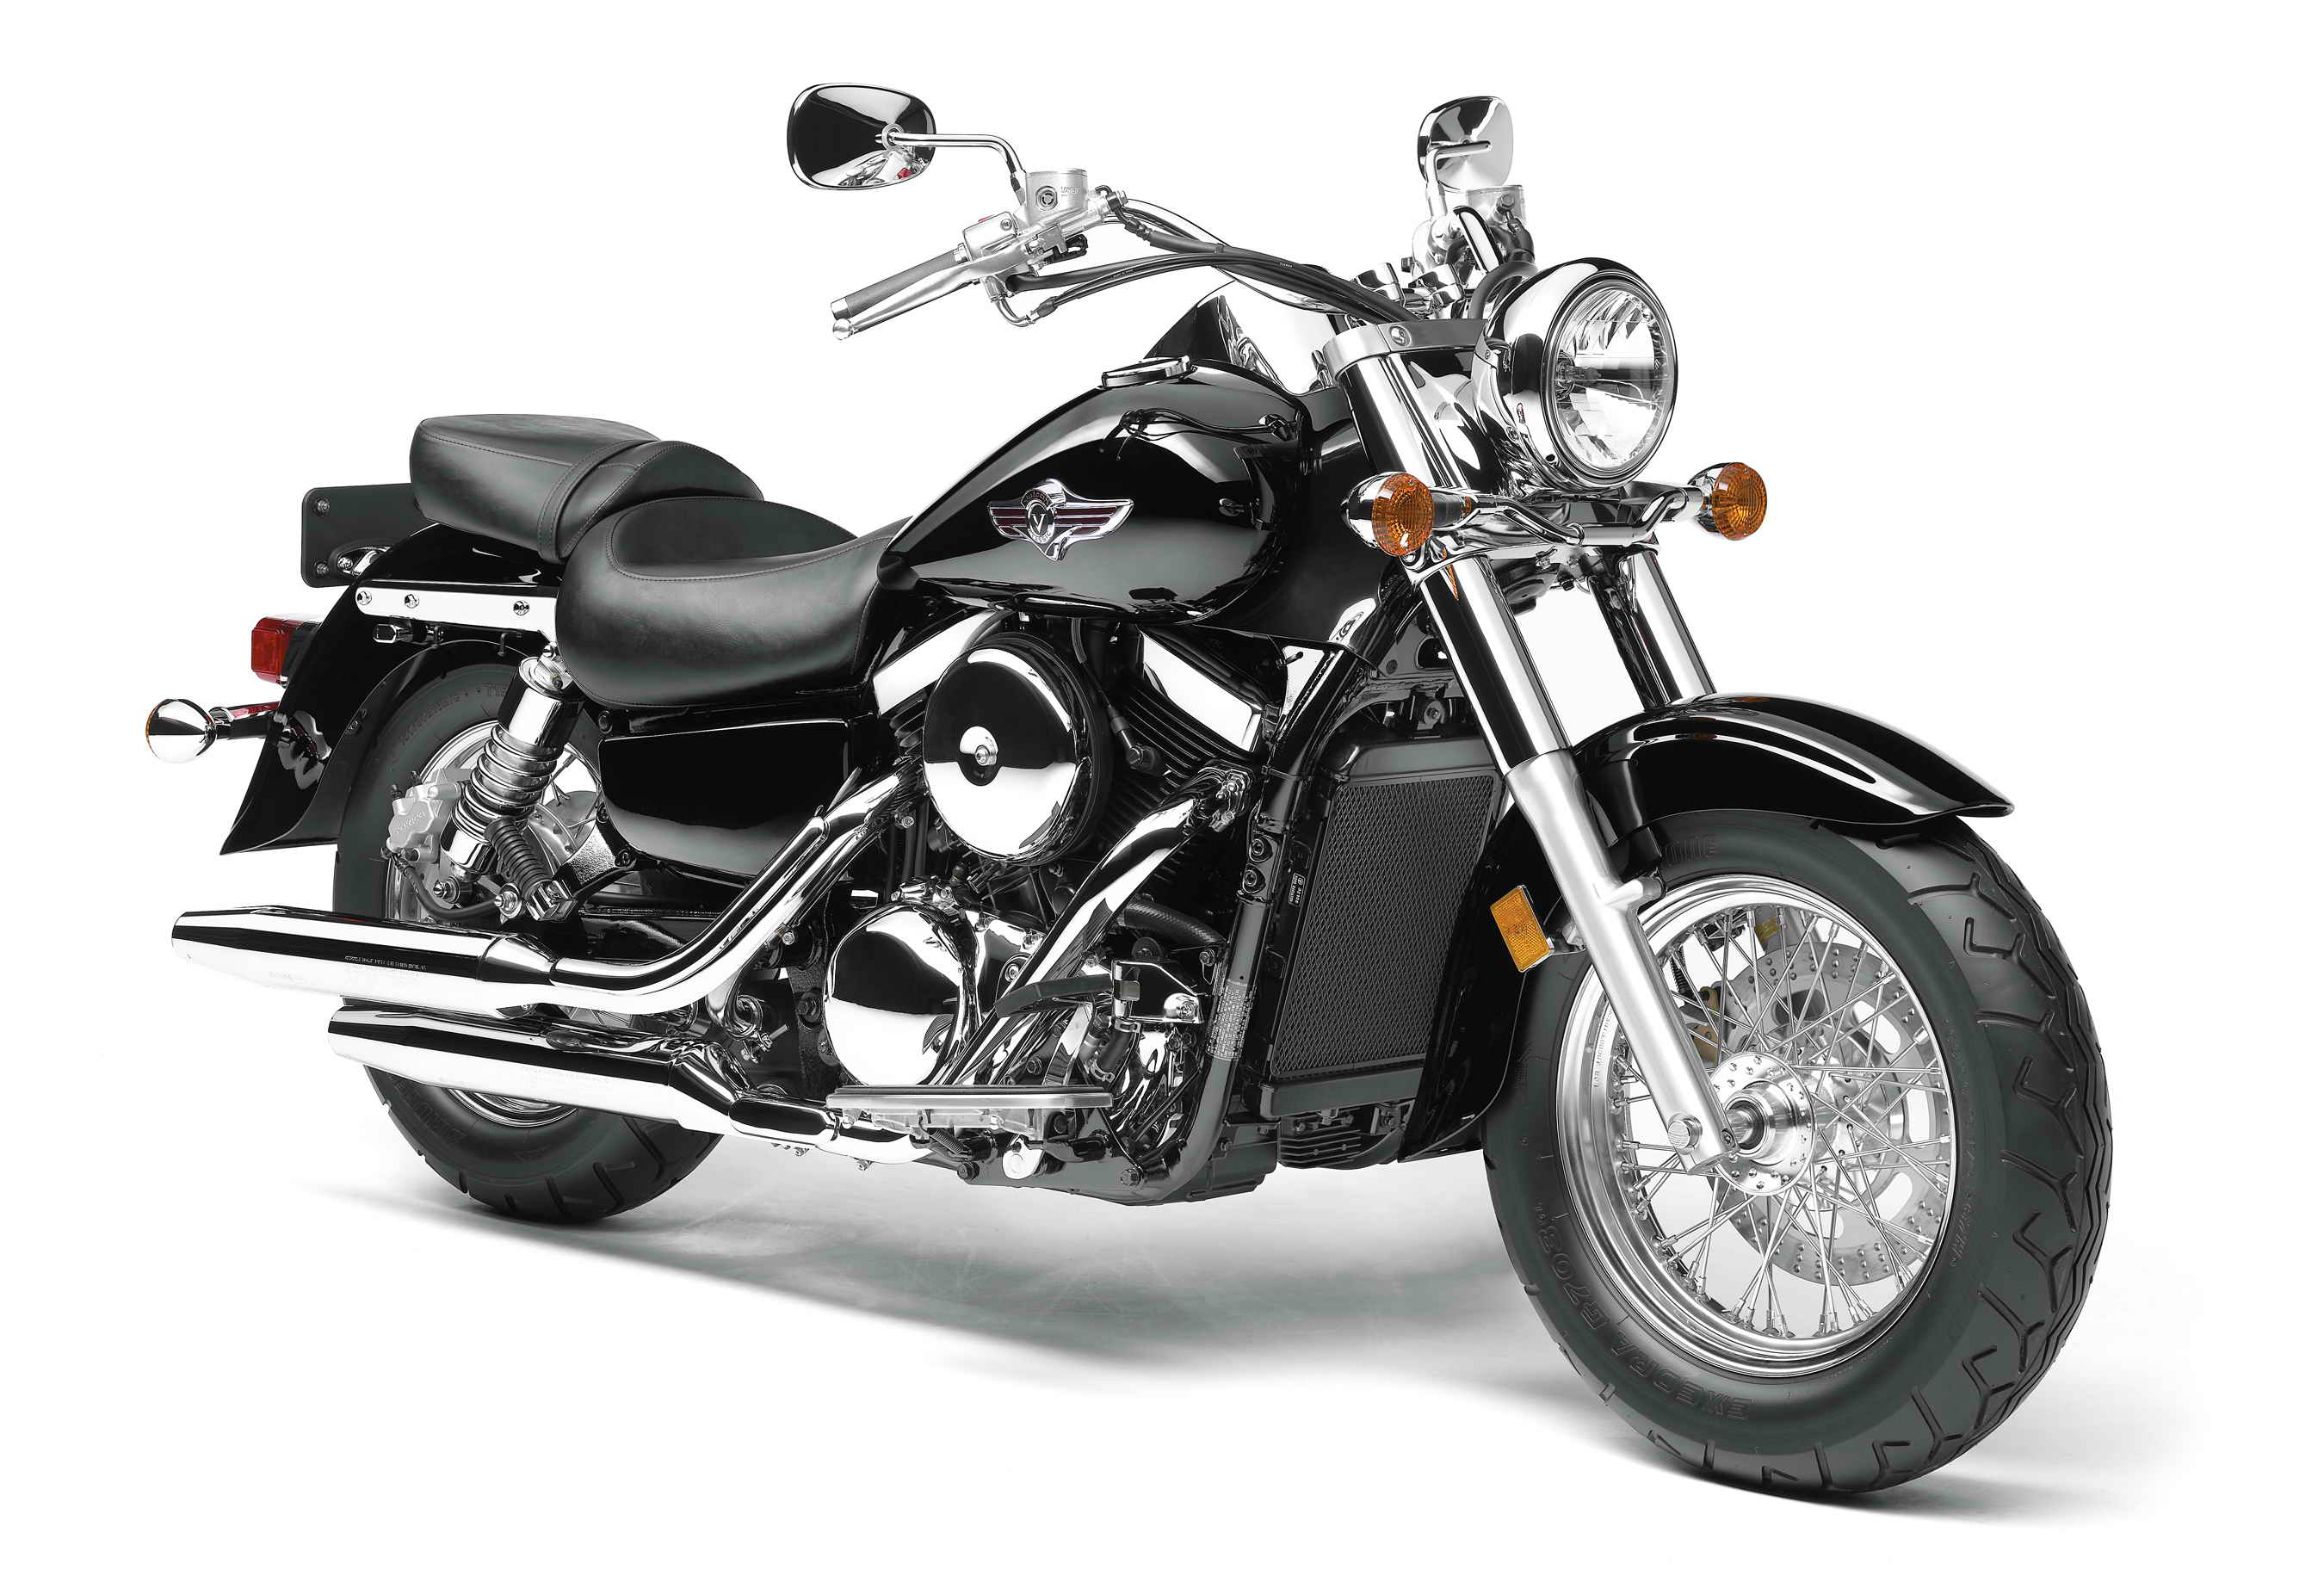 2007 kawasaki vulcan 1500 classic review top speed. Black Bedroom Furniture Sets. Home Design Ideas